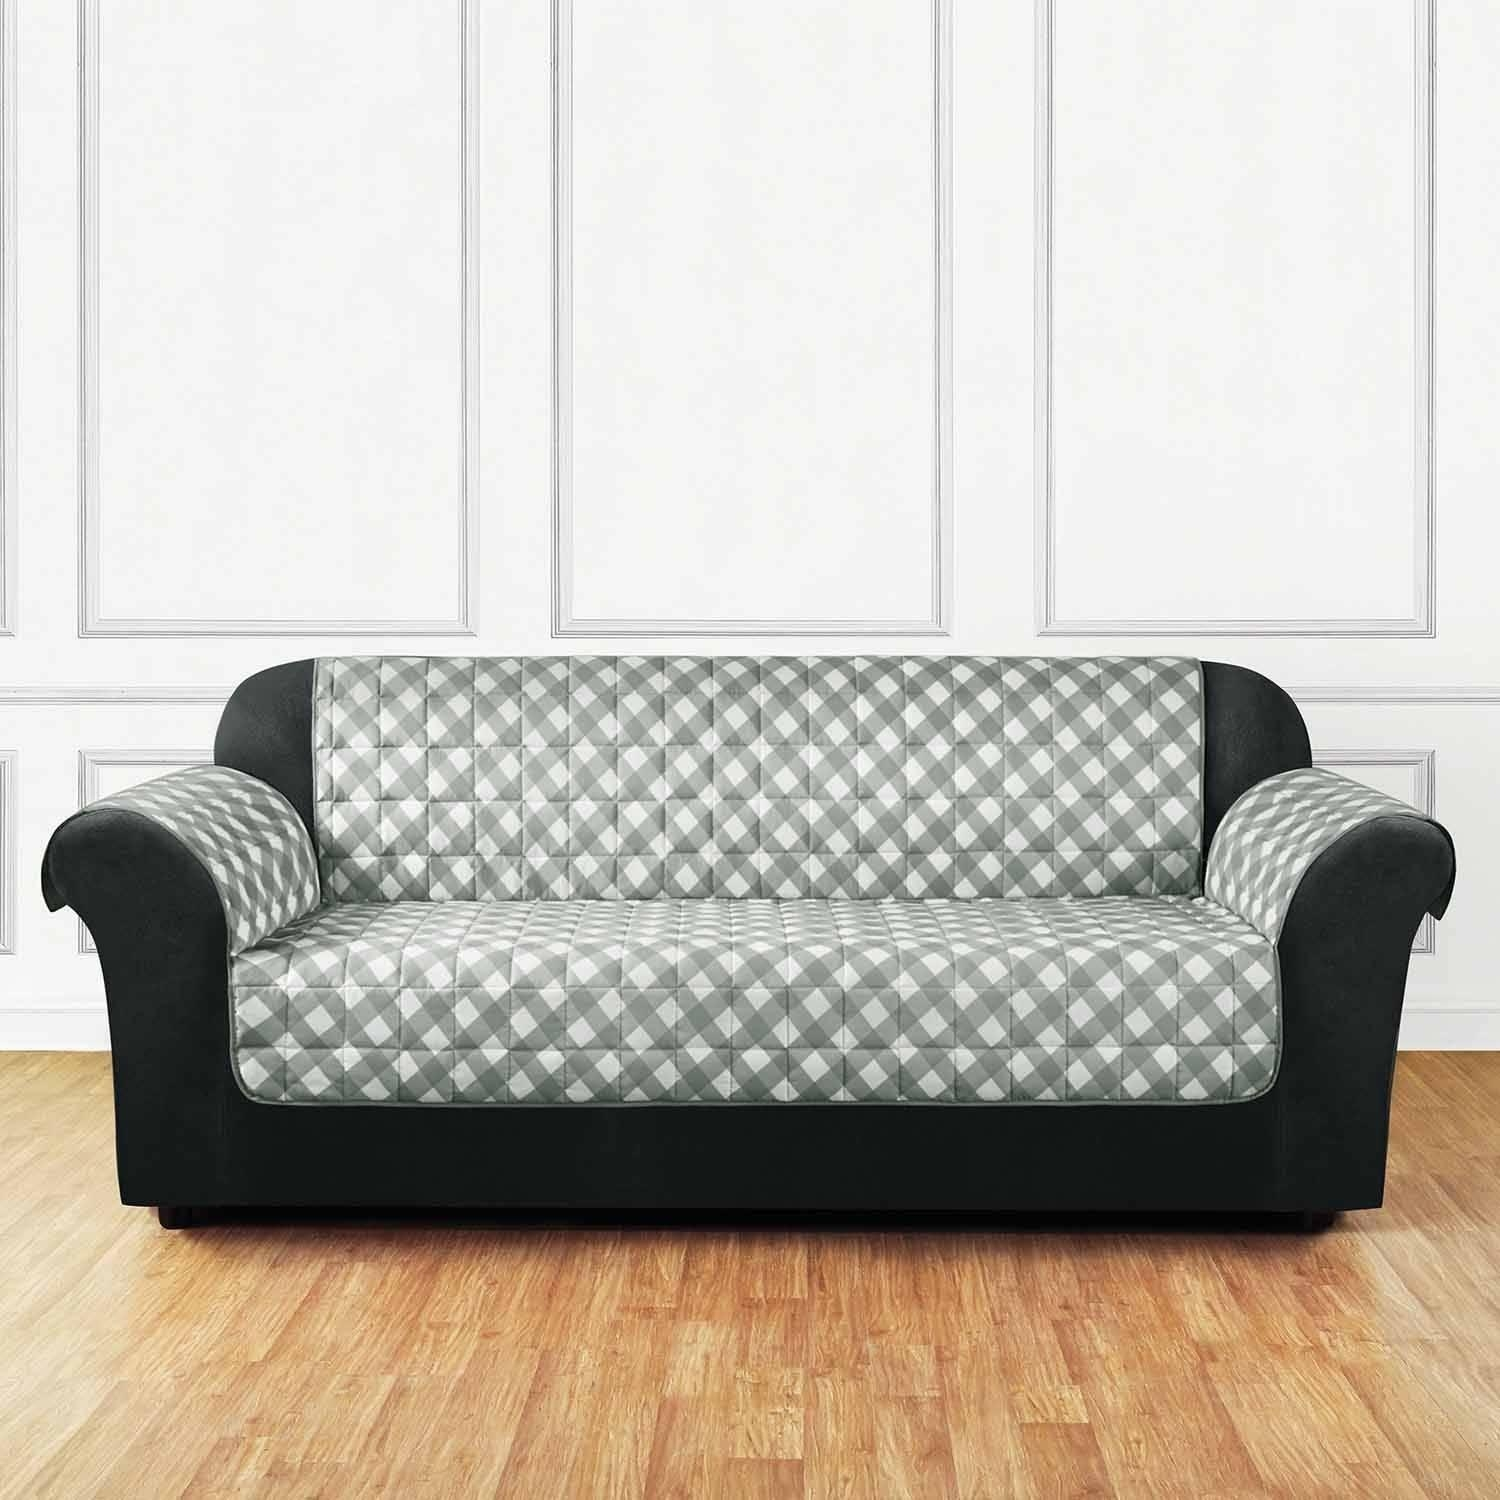 Gingham Sofa With Concept Photo 22417 | Kengire With Gingham Sofas (View 9 of 20)